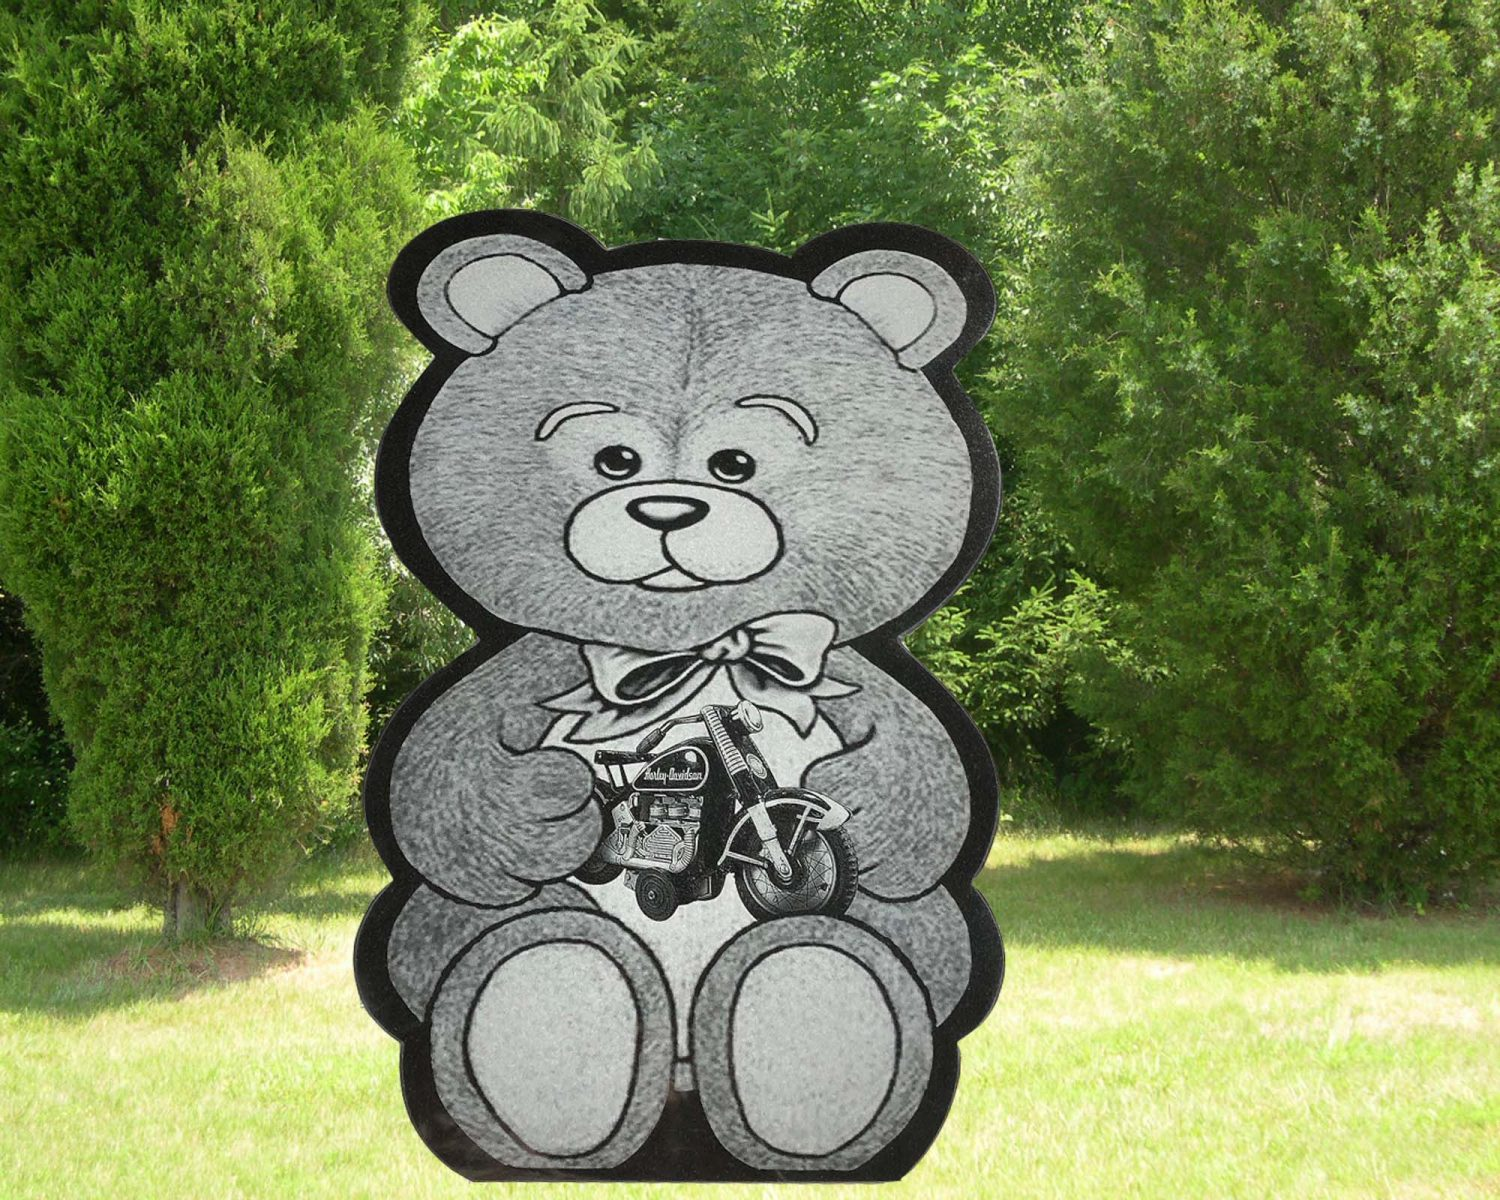 EG-18-200 / Jet Black / Teddy Bear & Bike Etching